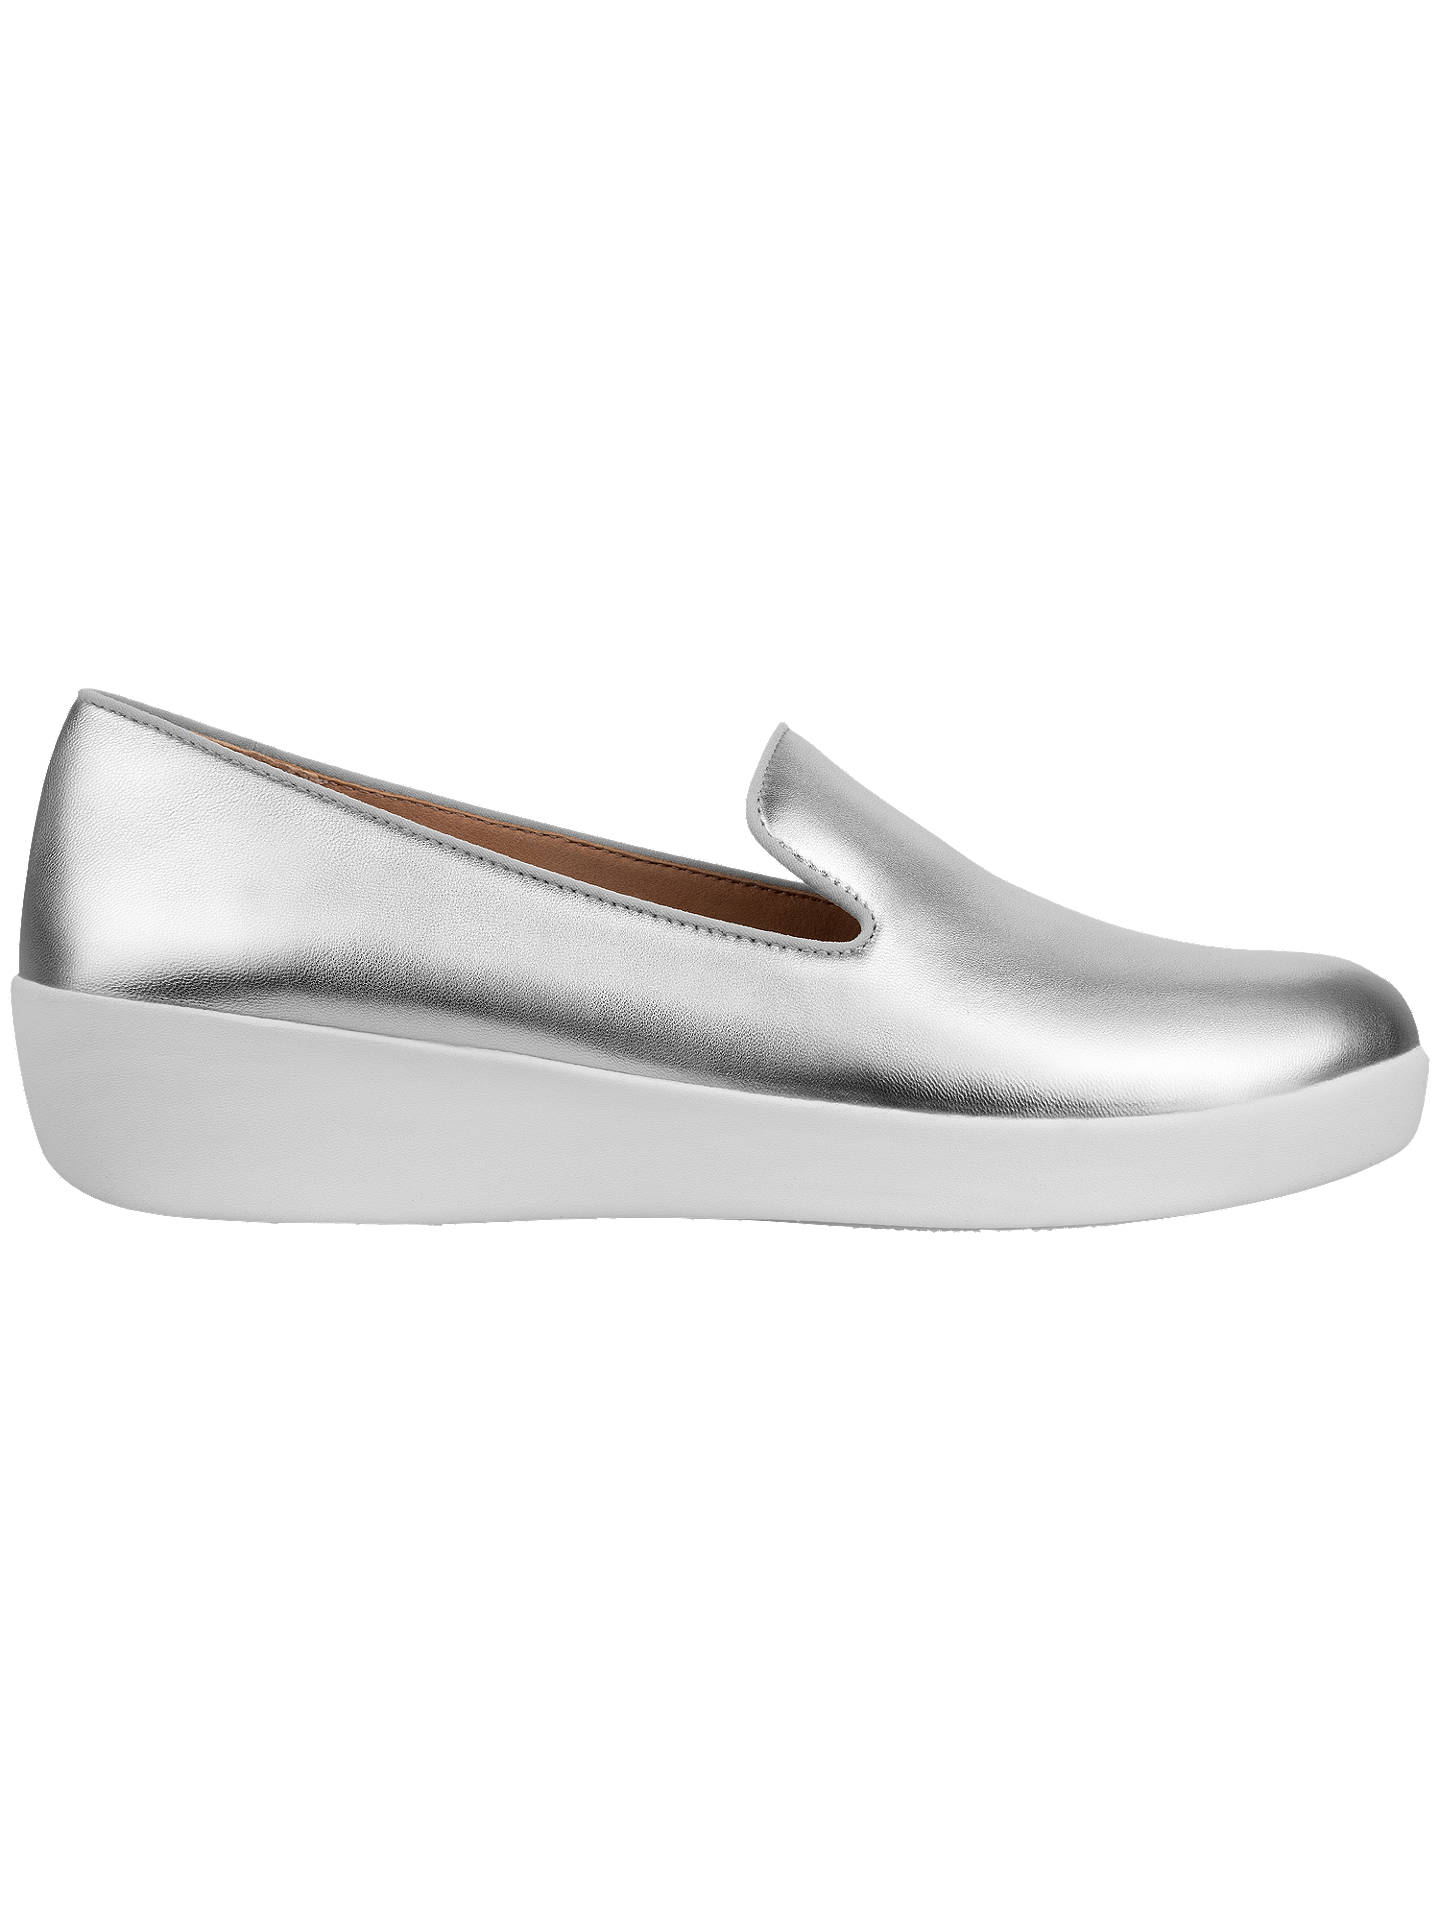 15ad177fe8c FitFlop Lulu Audrey Slip-On Loafers at John Lewis   Partners